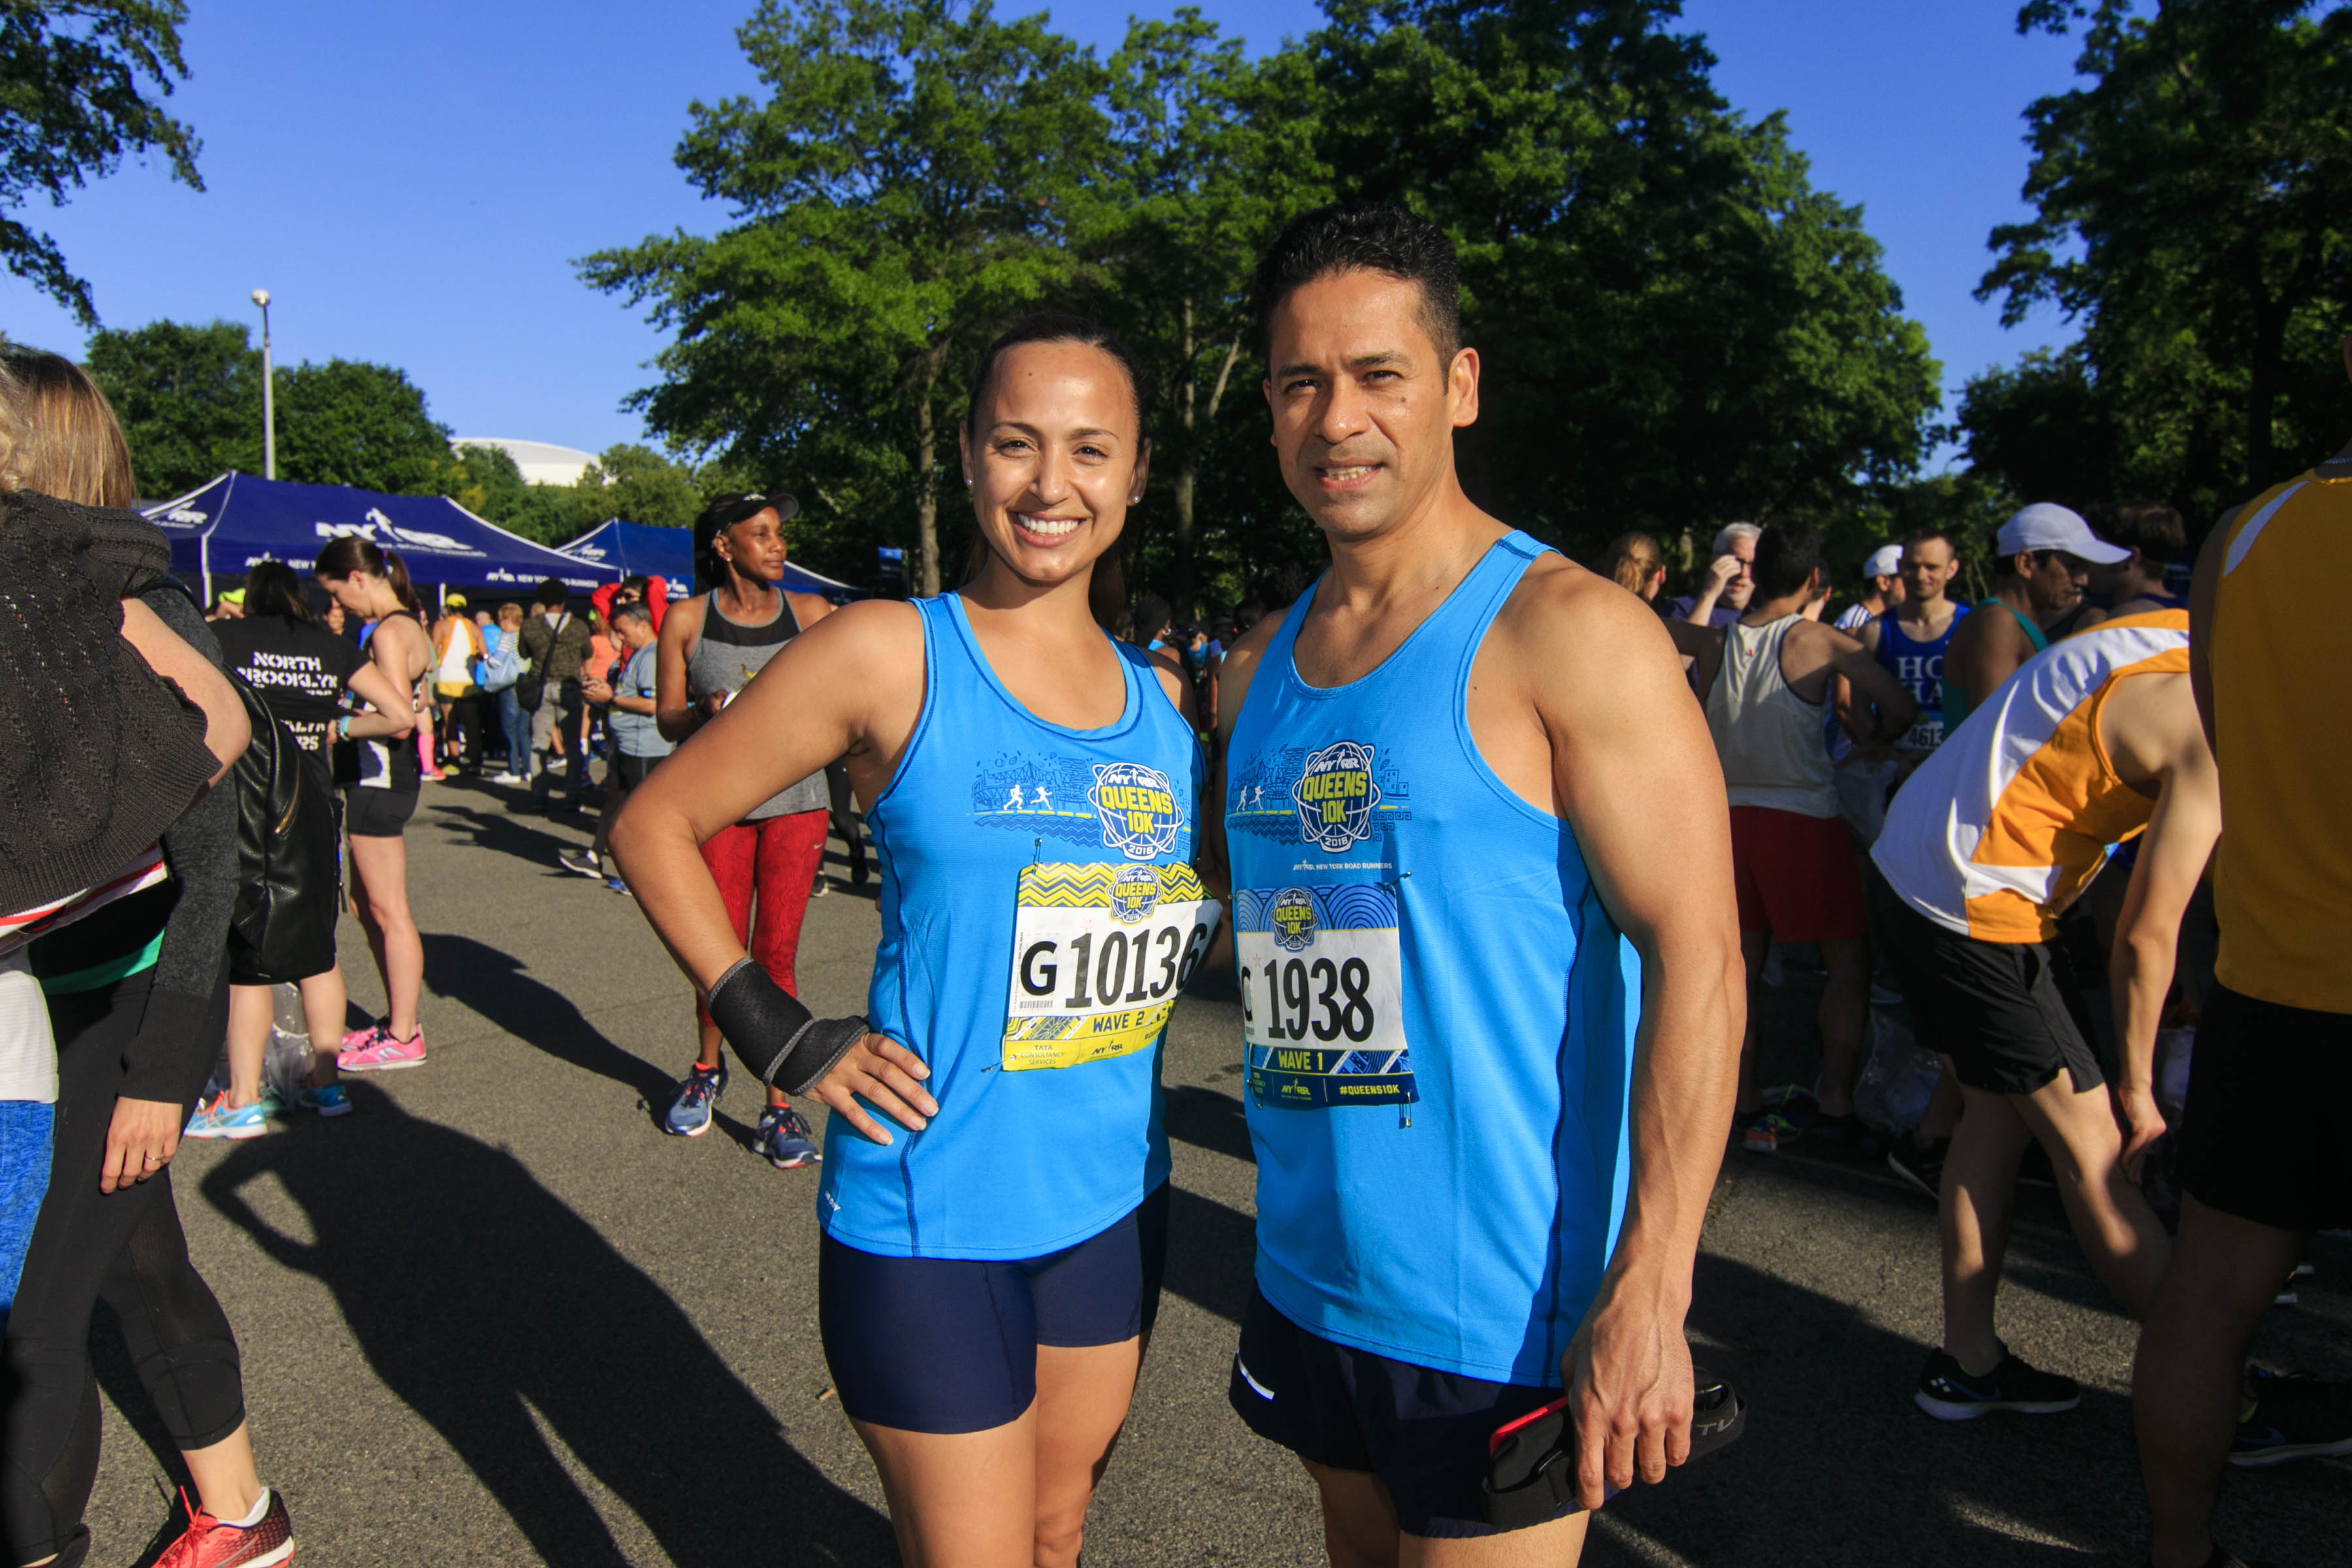 Runners at the NYRR Queens 10K